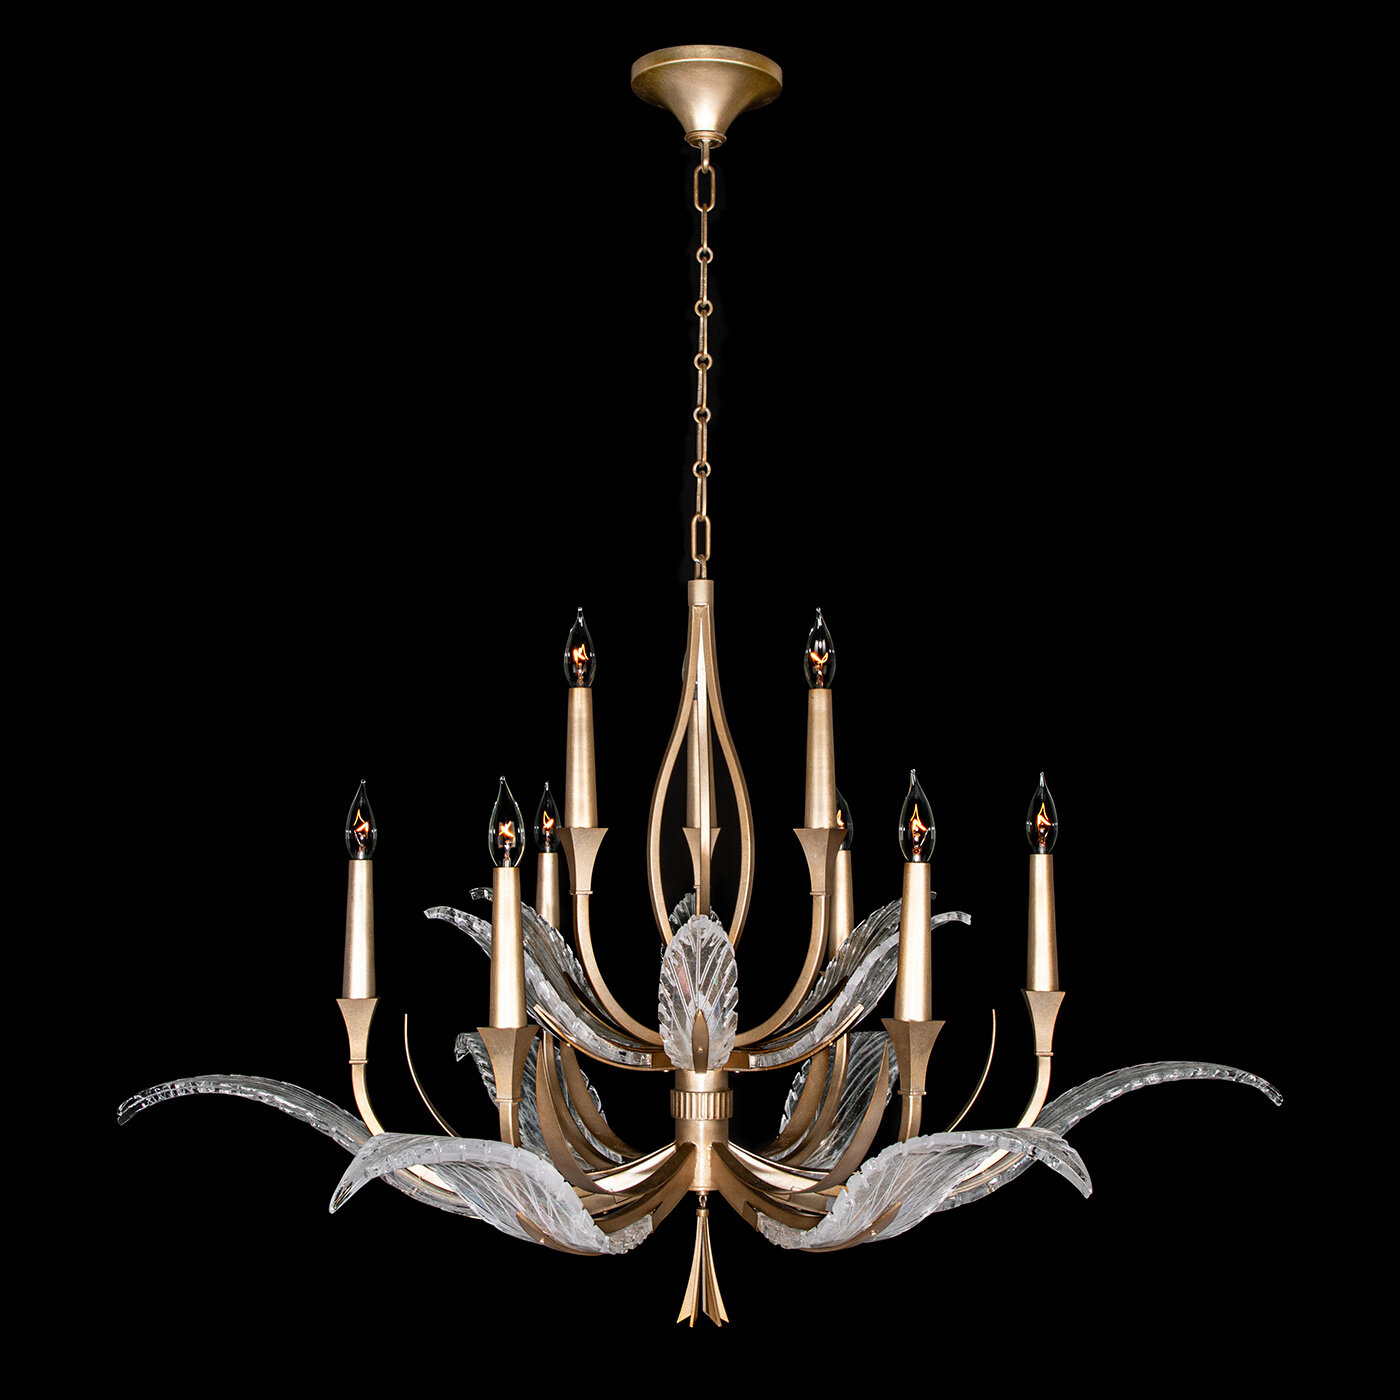 Fine Art Lamps Plume 9 Light Candle Style Classic Chandelier With Rope Accents Wayfair